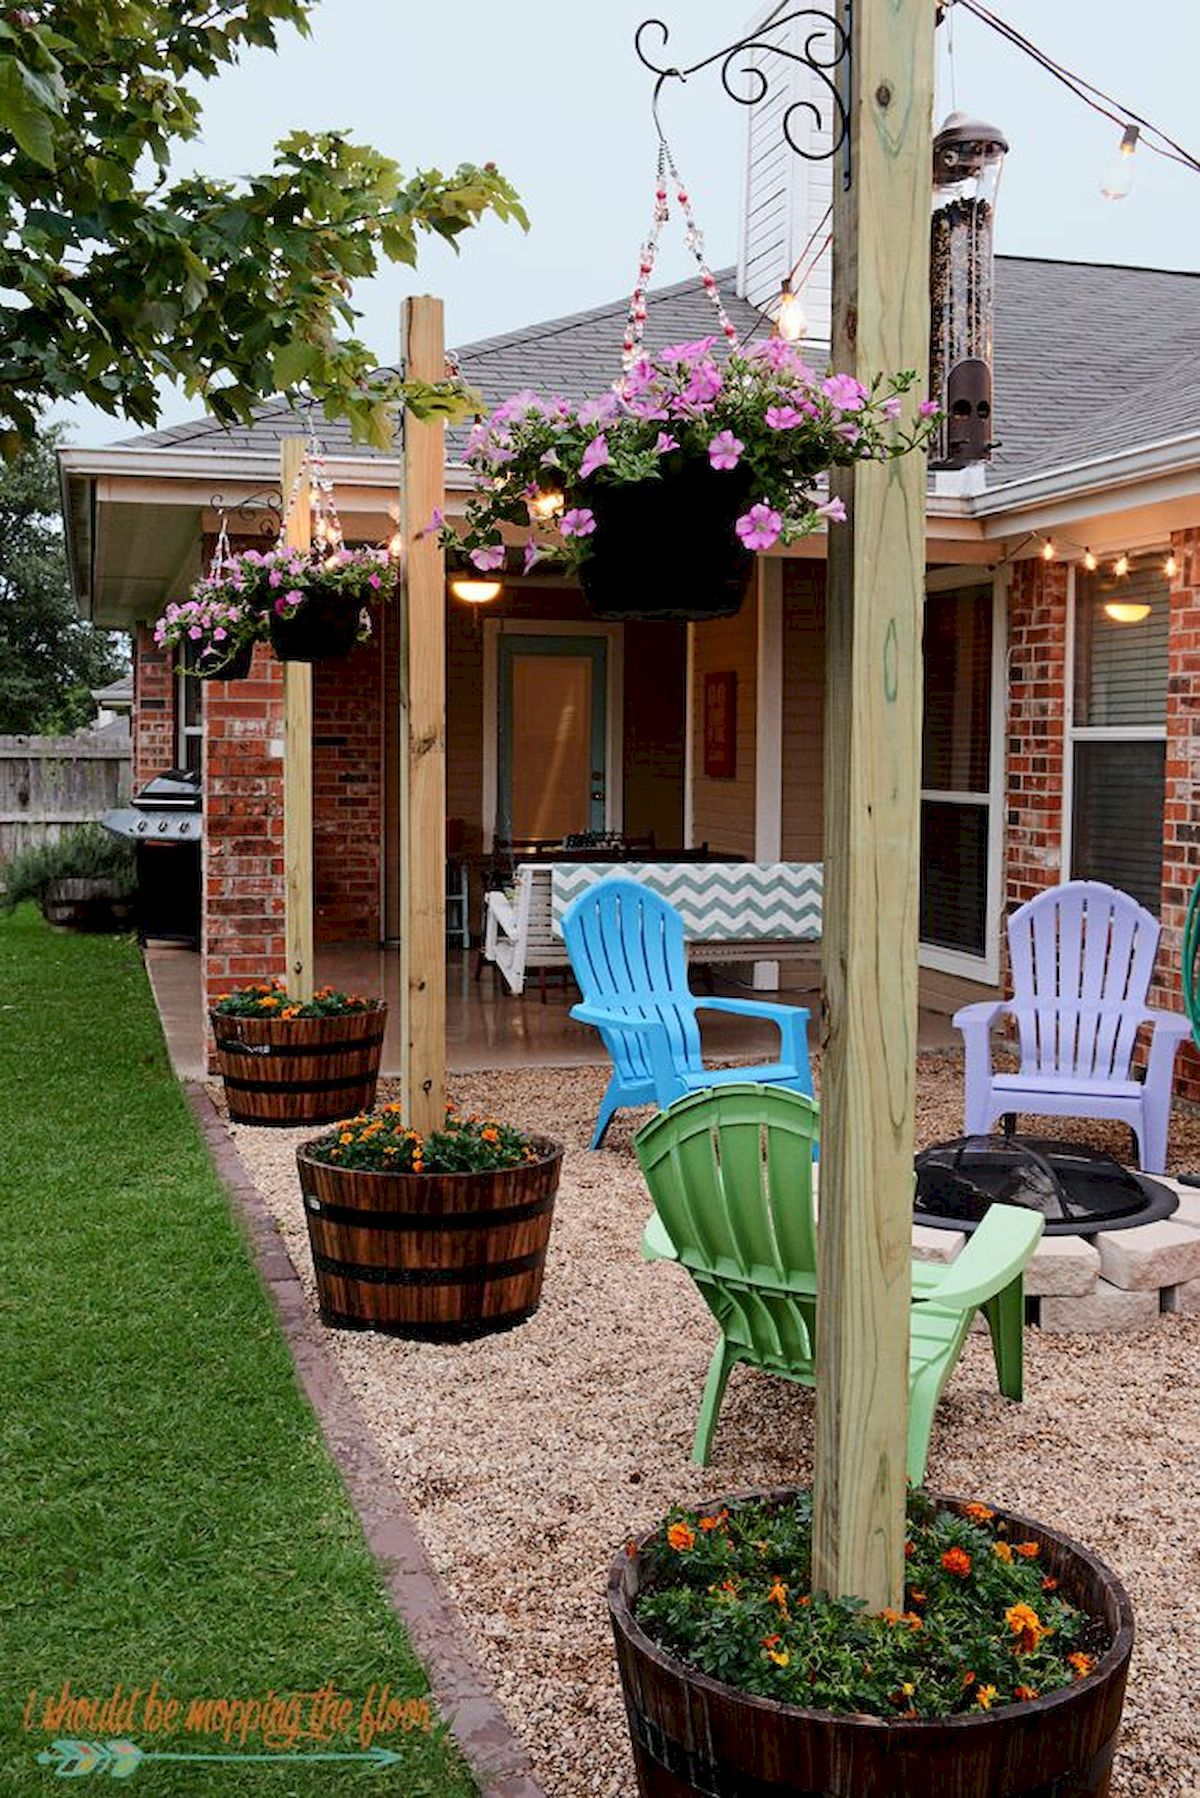 40 Diy Fun Garden Ideas Decorations And Makeover For Summer Yard for Ideas To Decorate Backyard